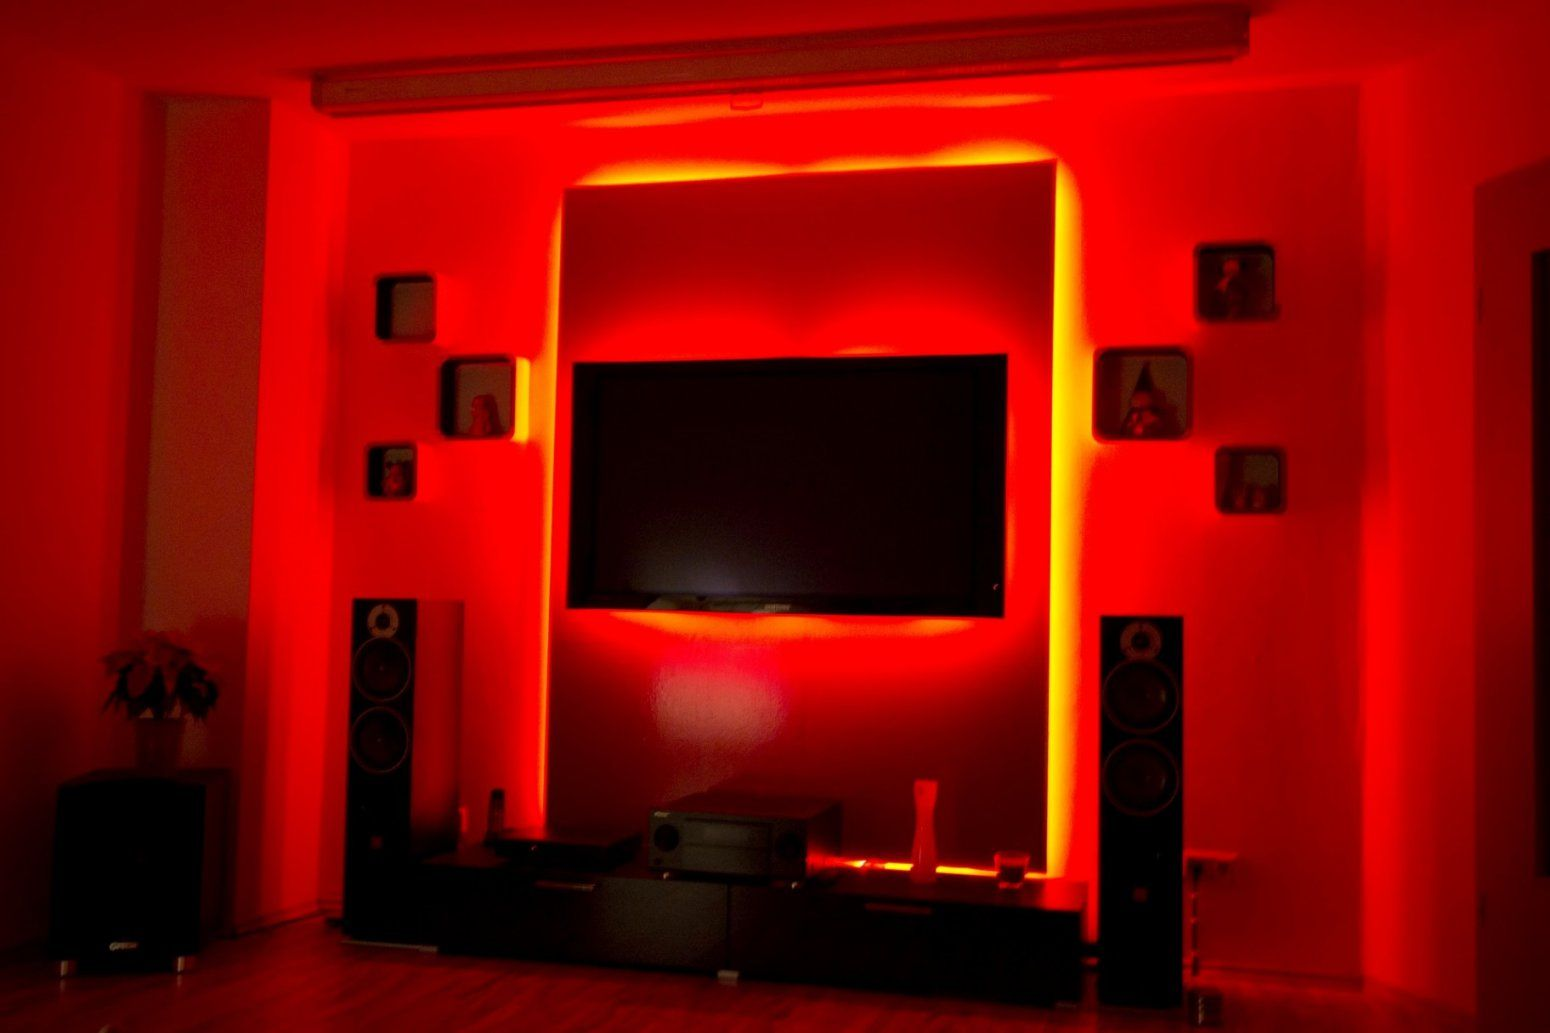 Beeindruckend Led Tv Wand Material Liste Youtube Inside Selber Bauen von Led Leinwand Selber Bauen Photo